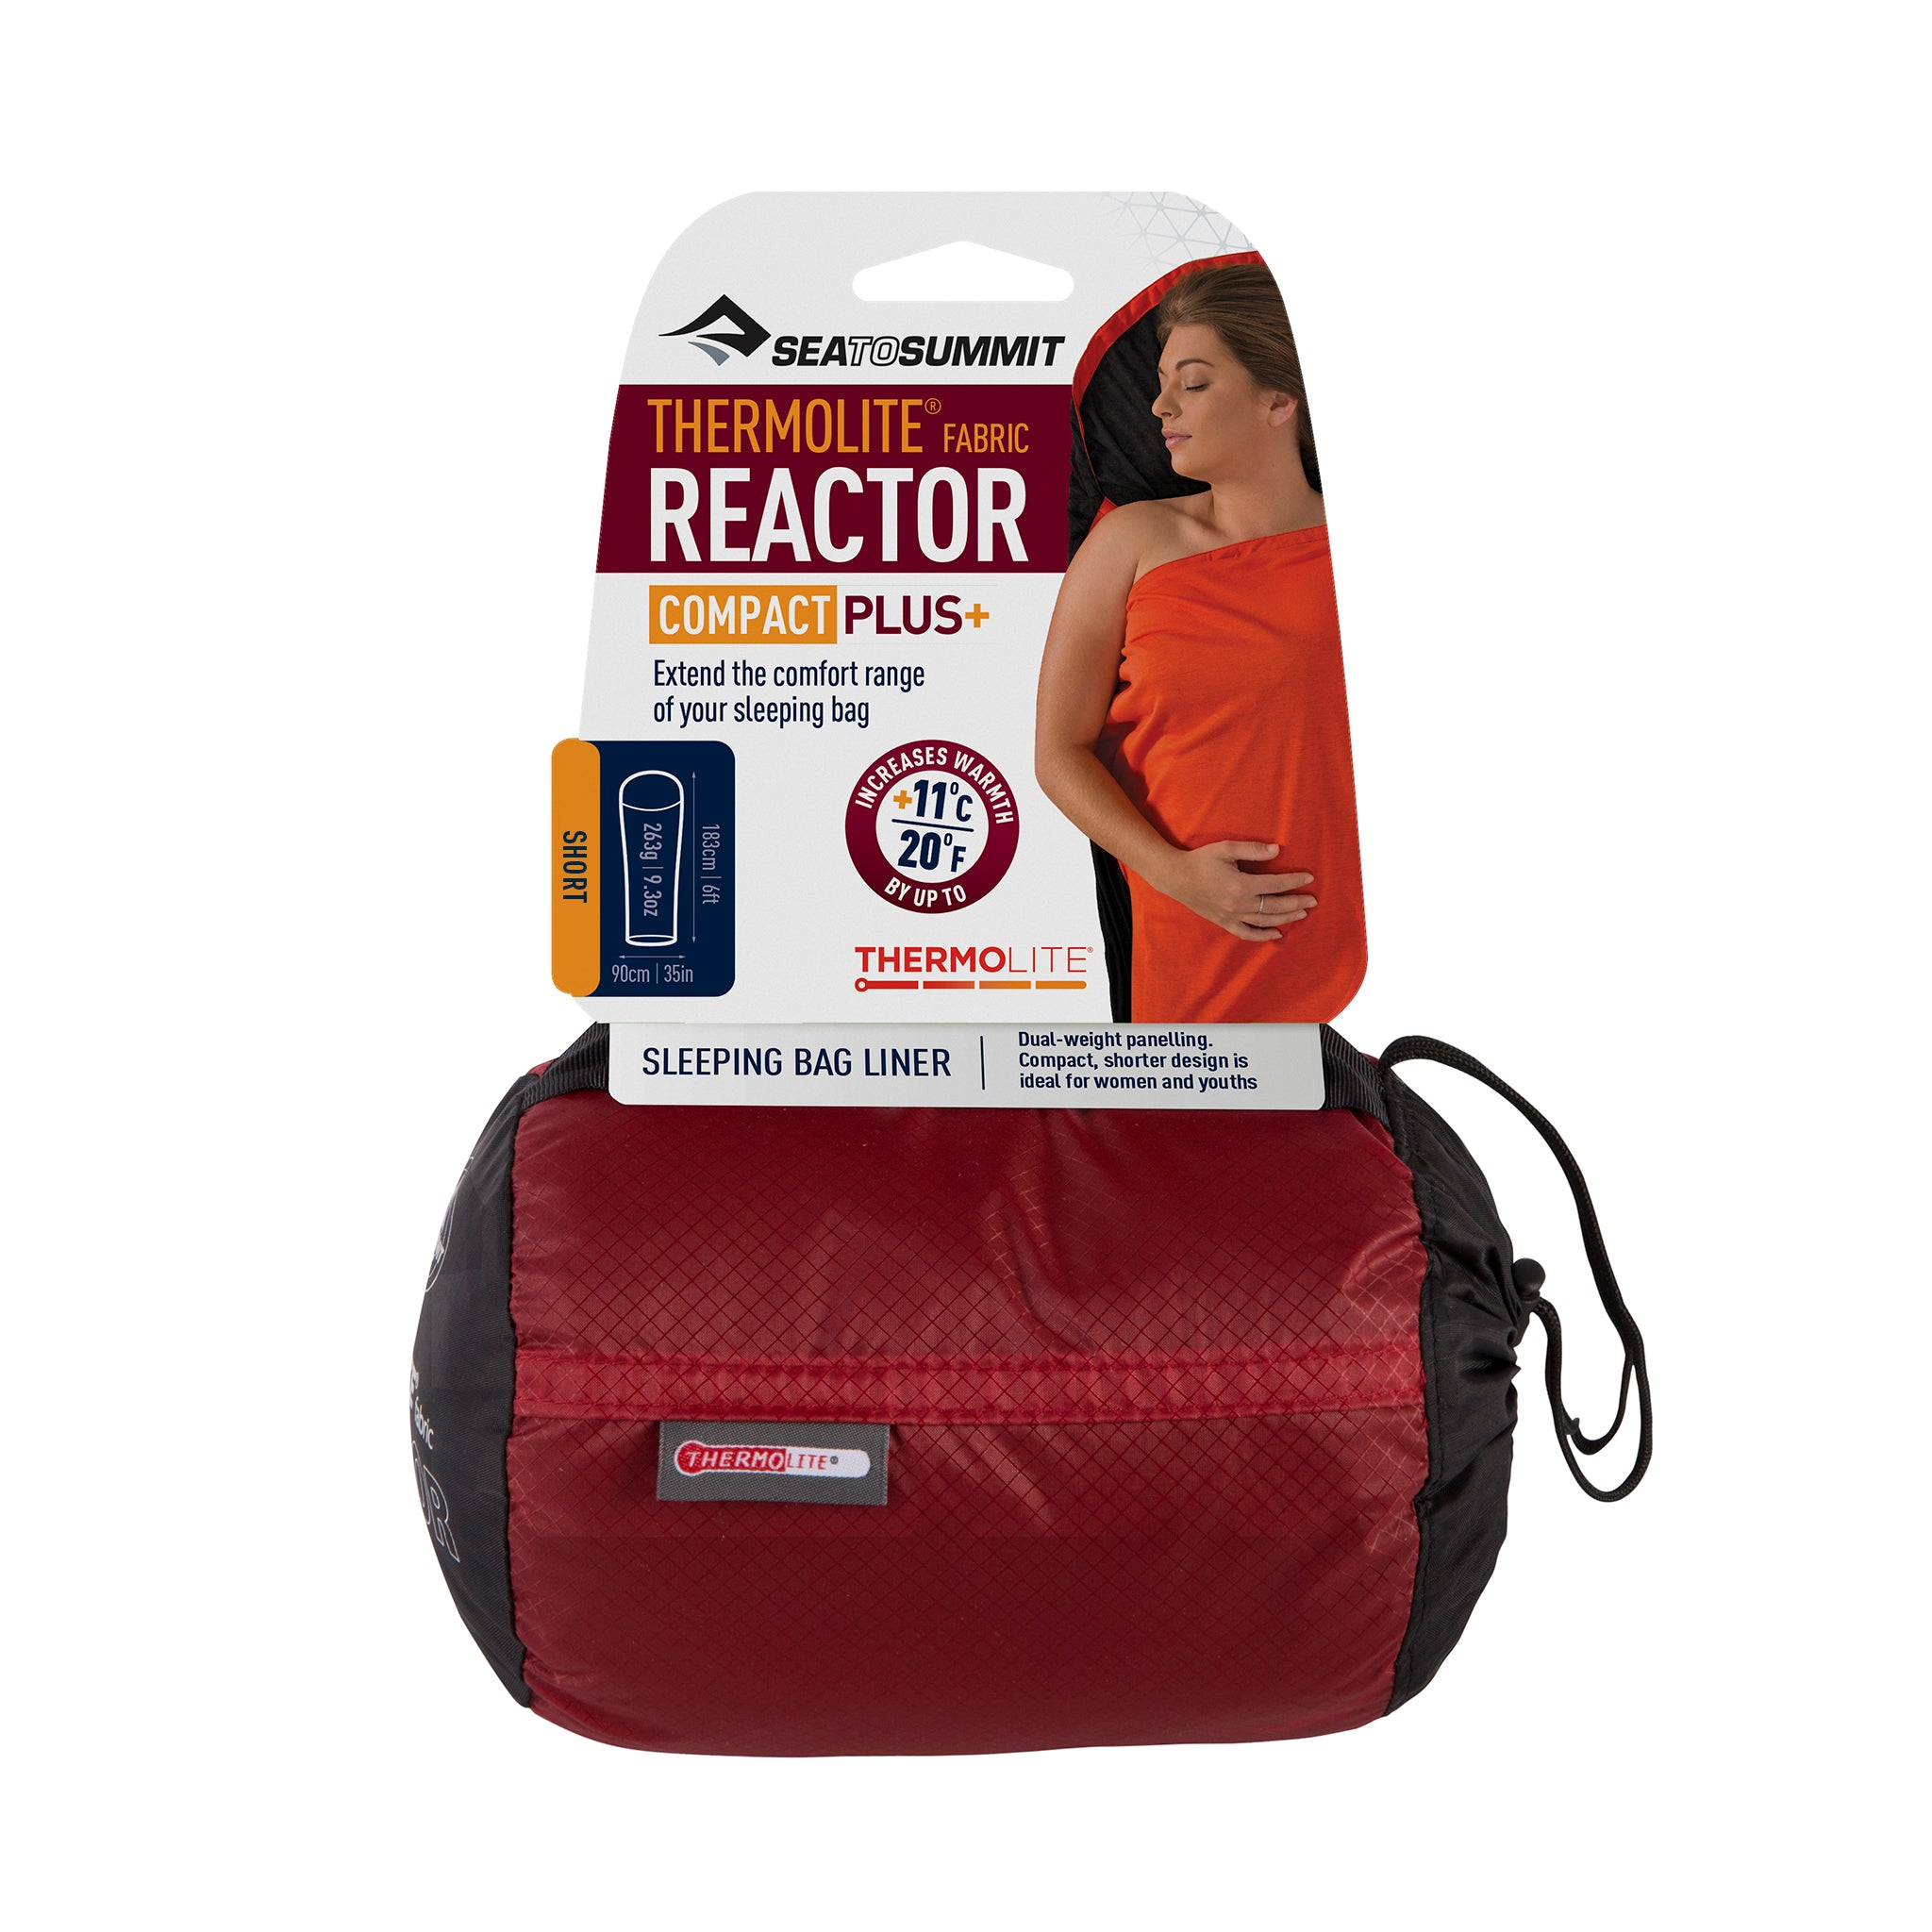 Reactor Compact Plus Liner (adds up to 20°F)